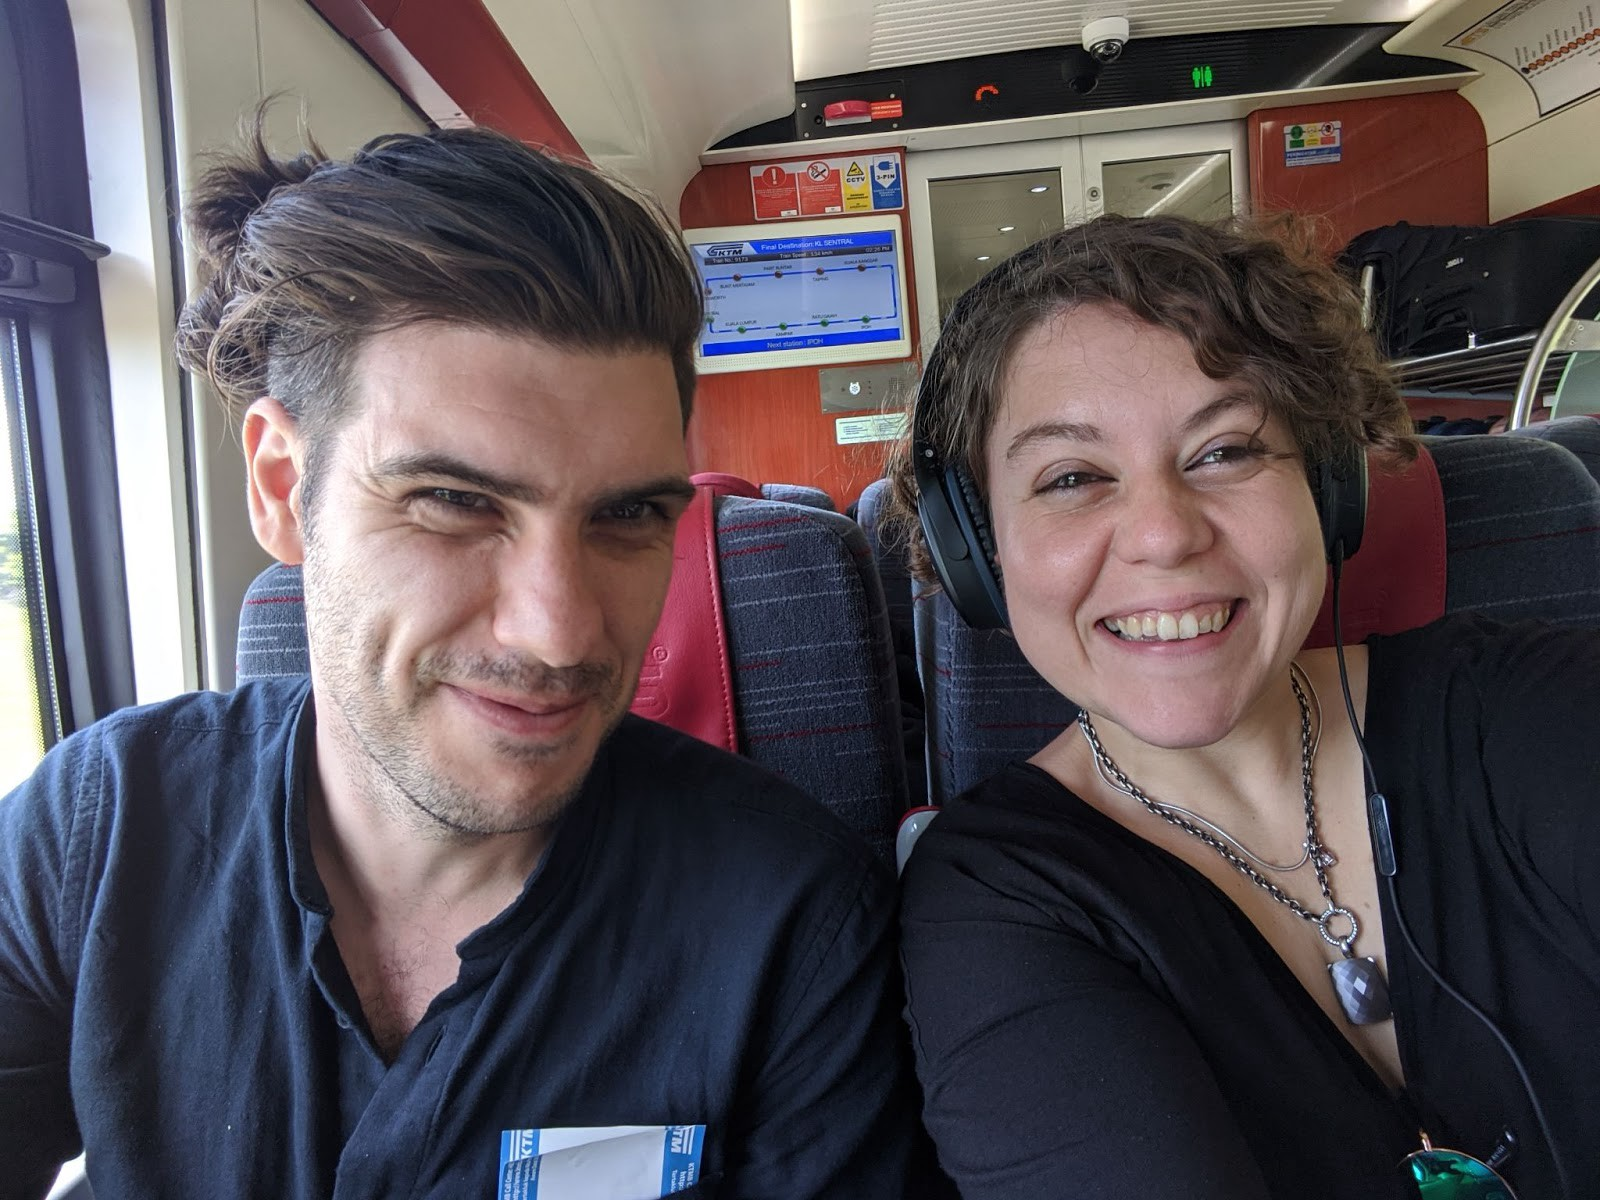 Lauren and her partner Jesse on a train from Kuala Lumpur to Butterworth, Malaysia, Feb 2020